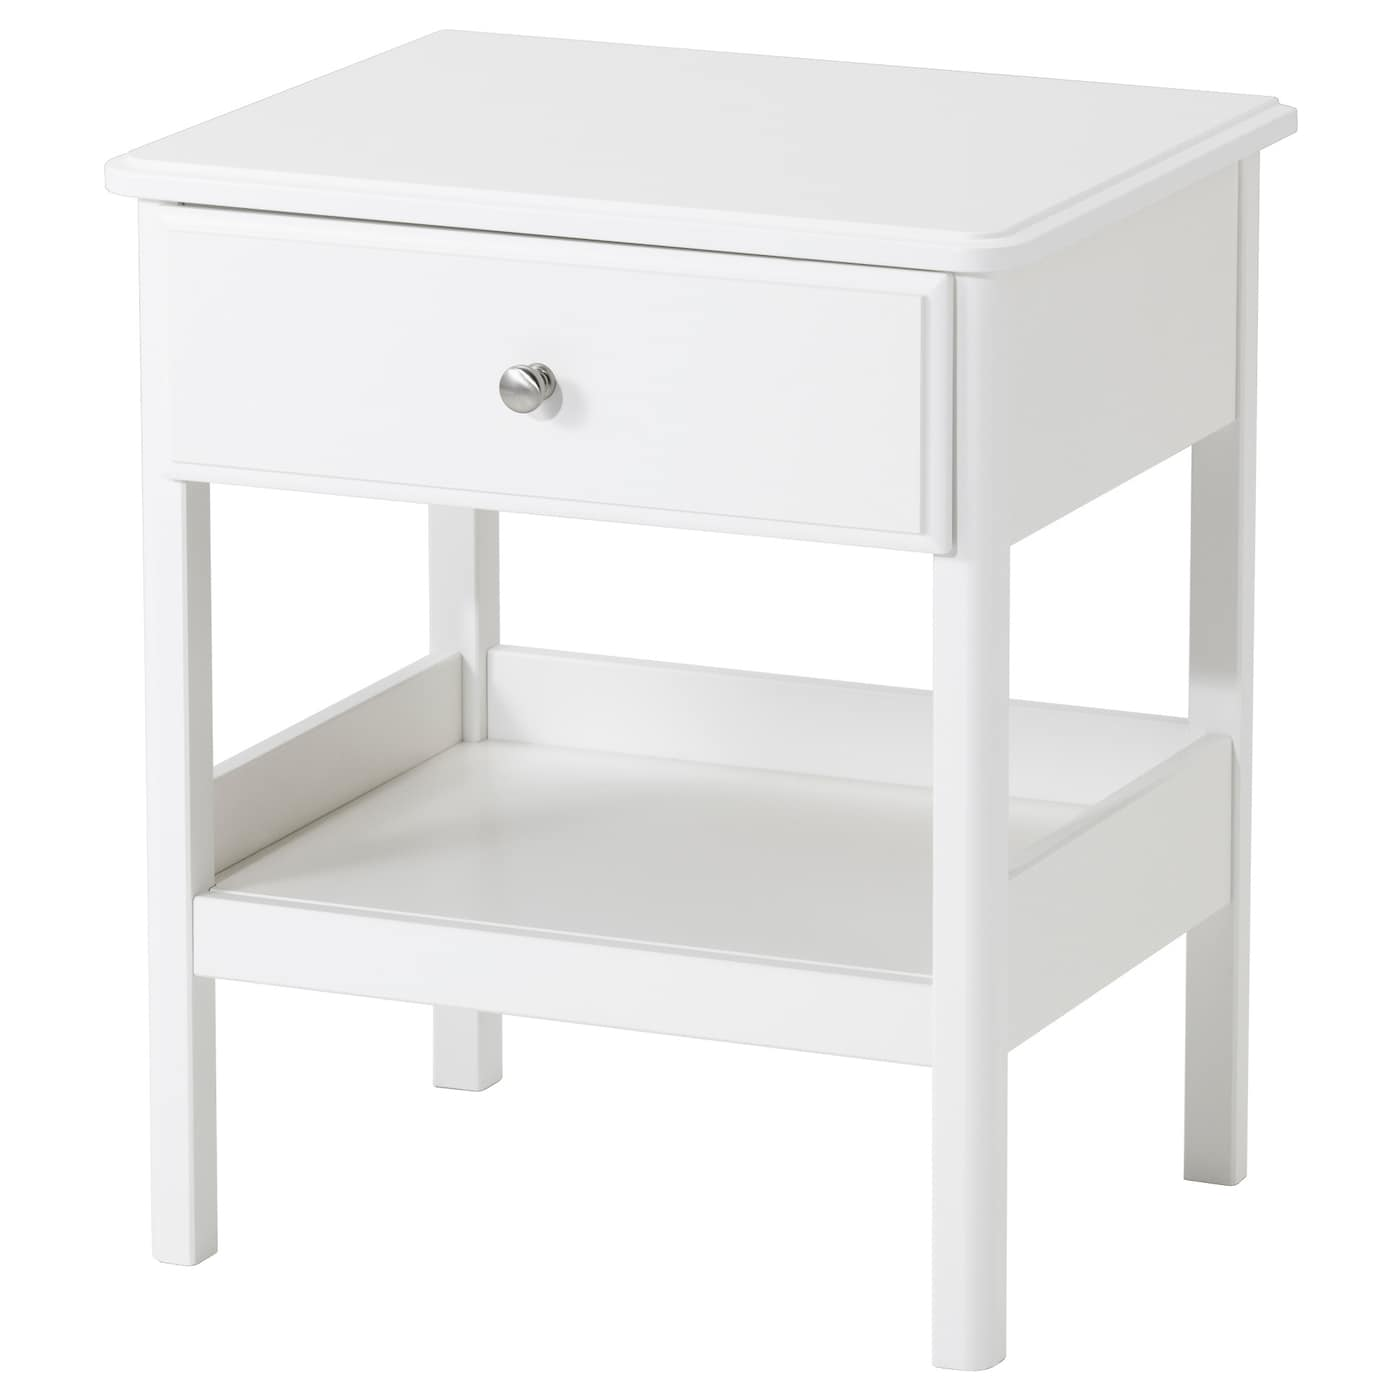 Tyssedal bedside table white 51x40 cm ikea for Table 70 cm hauteur